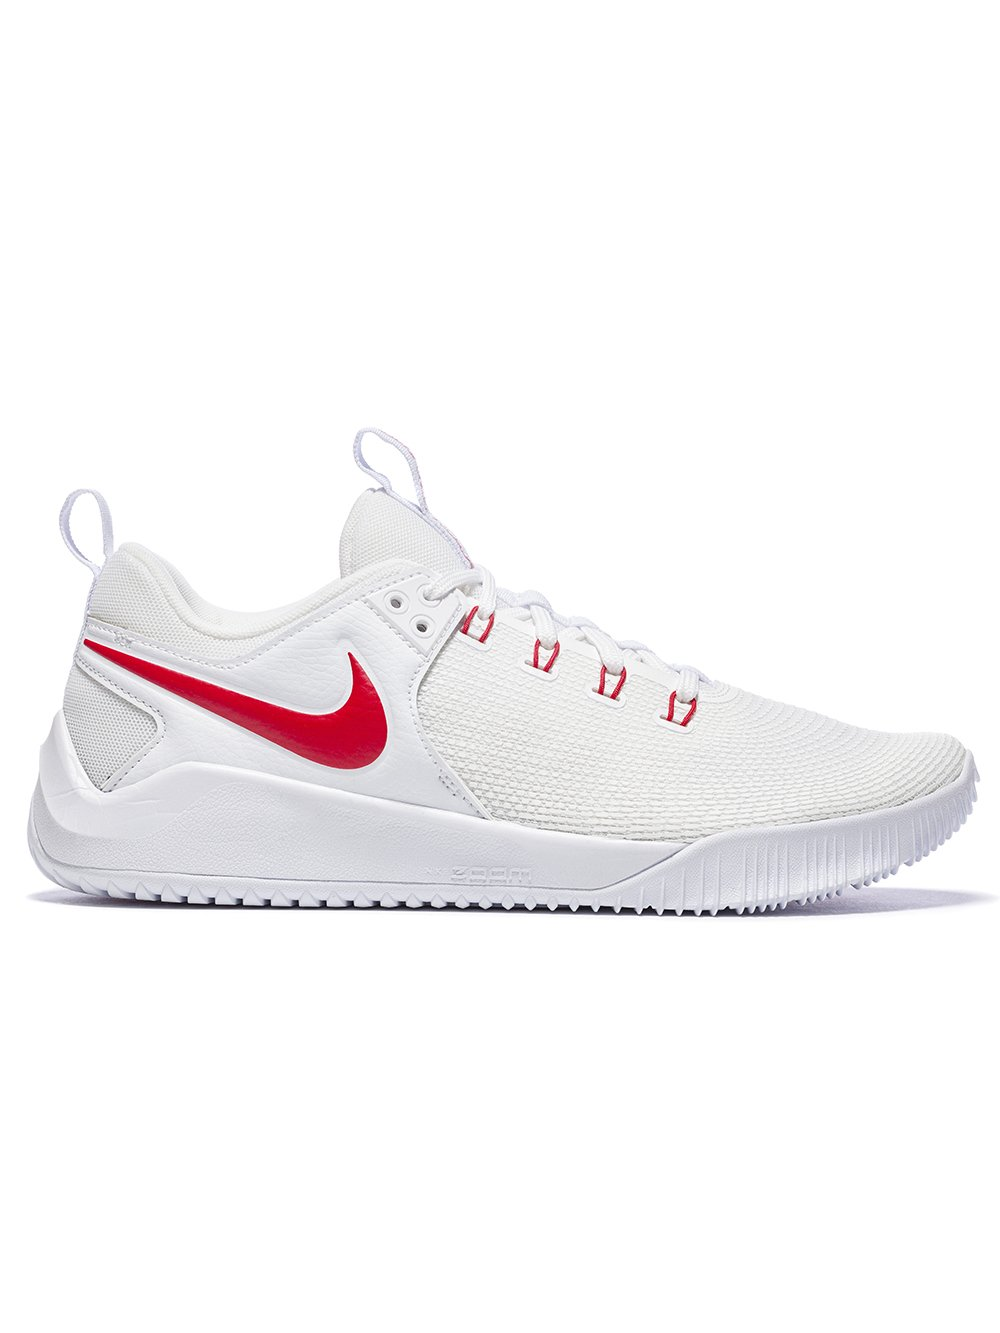 Nike Women's Zoom Hyperface 2 Volleyball Shoes B0761XZMGX 7.5 B(M) US|White/University Red